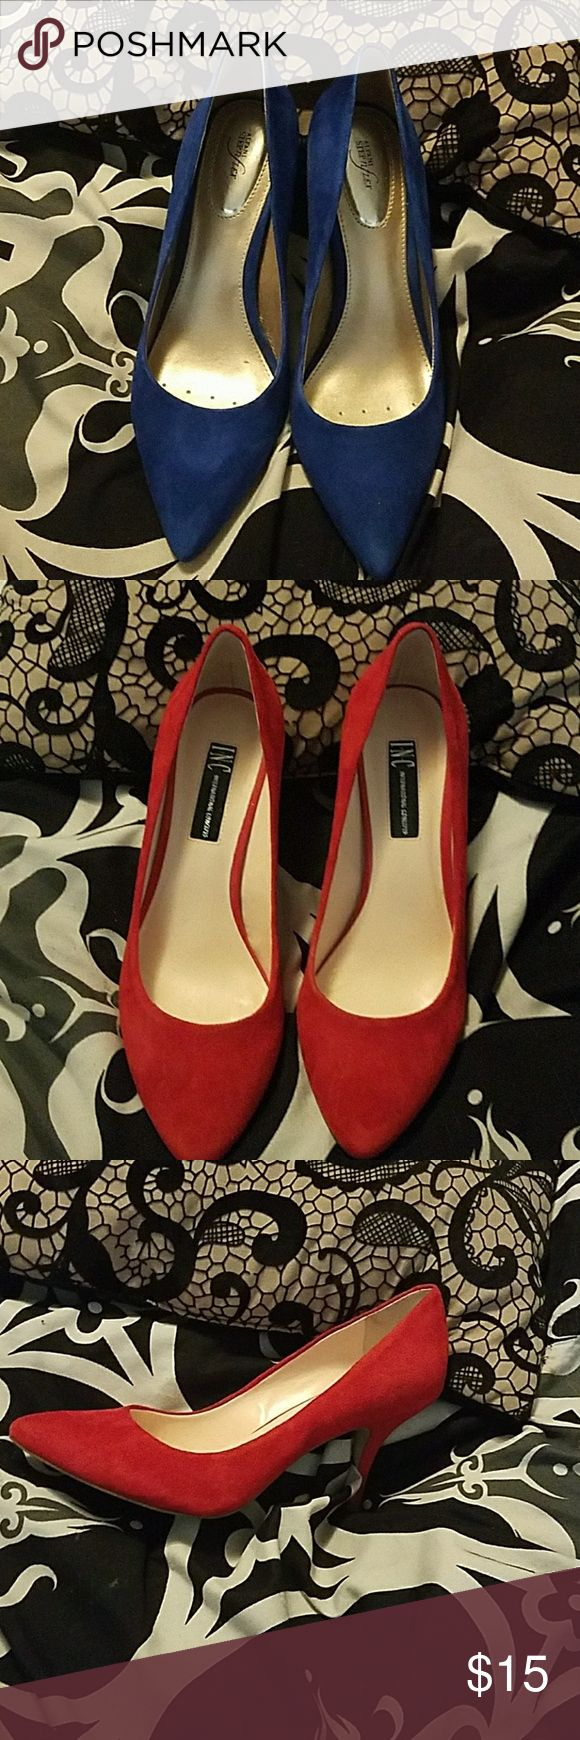 3 inch Blue and Red Pumps Both are Size 8 Nice pumps heels are not sky high, but a good height if you really dont want a high heel and you have to walk or stand . Heel are 3 inches and you get both as a bundle deal! Shoes Heels